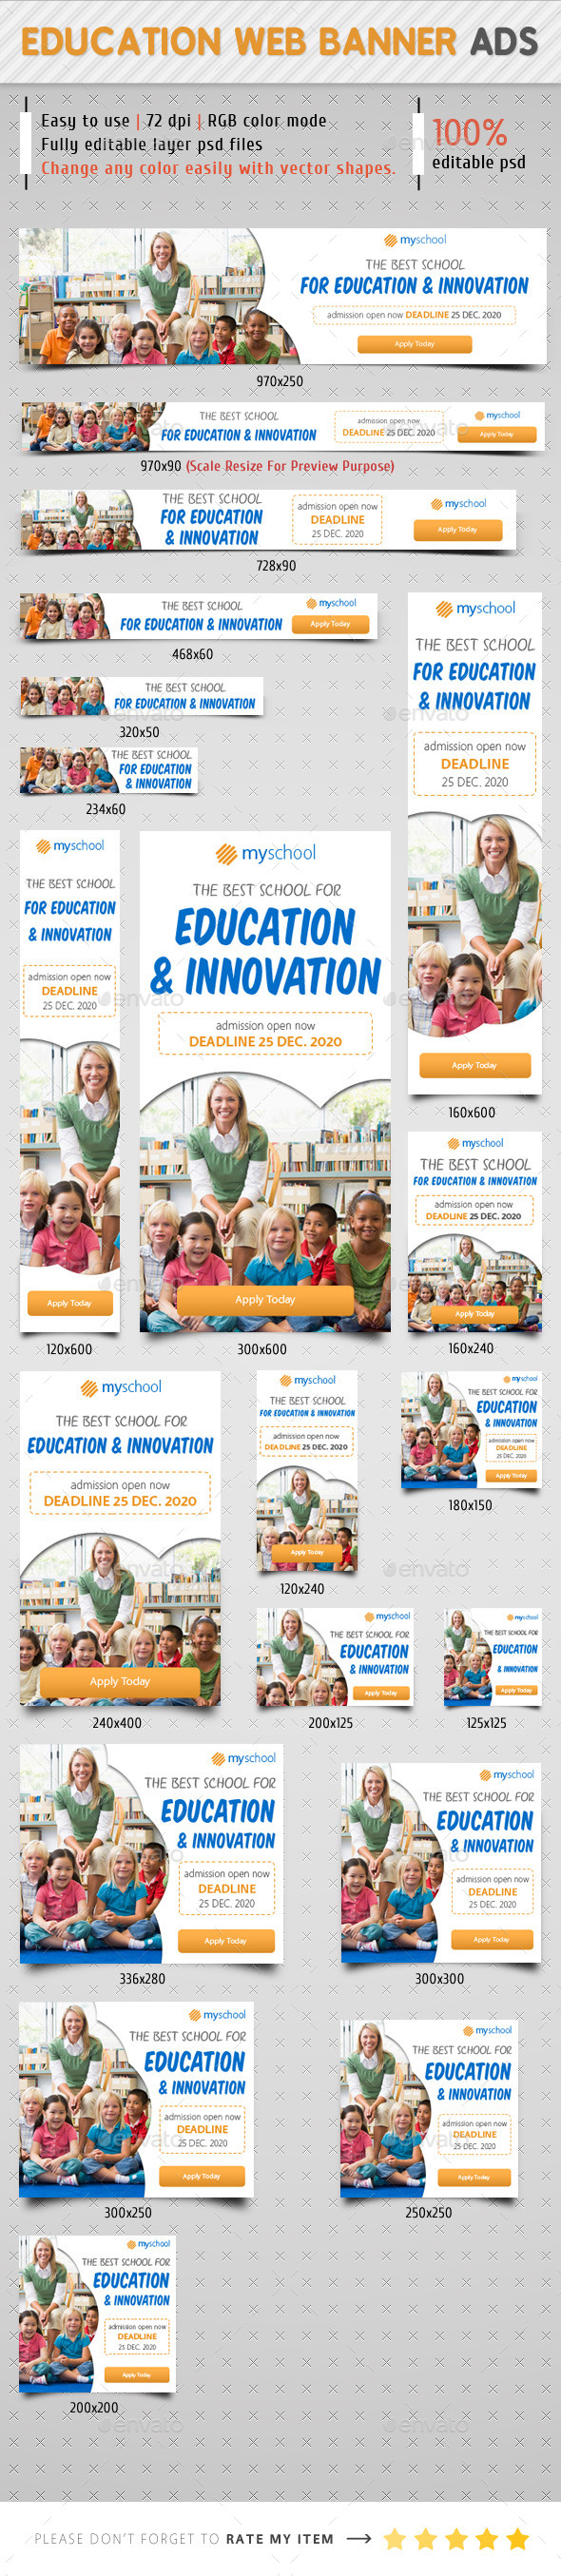 Education Web Banner Ads